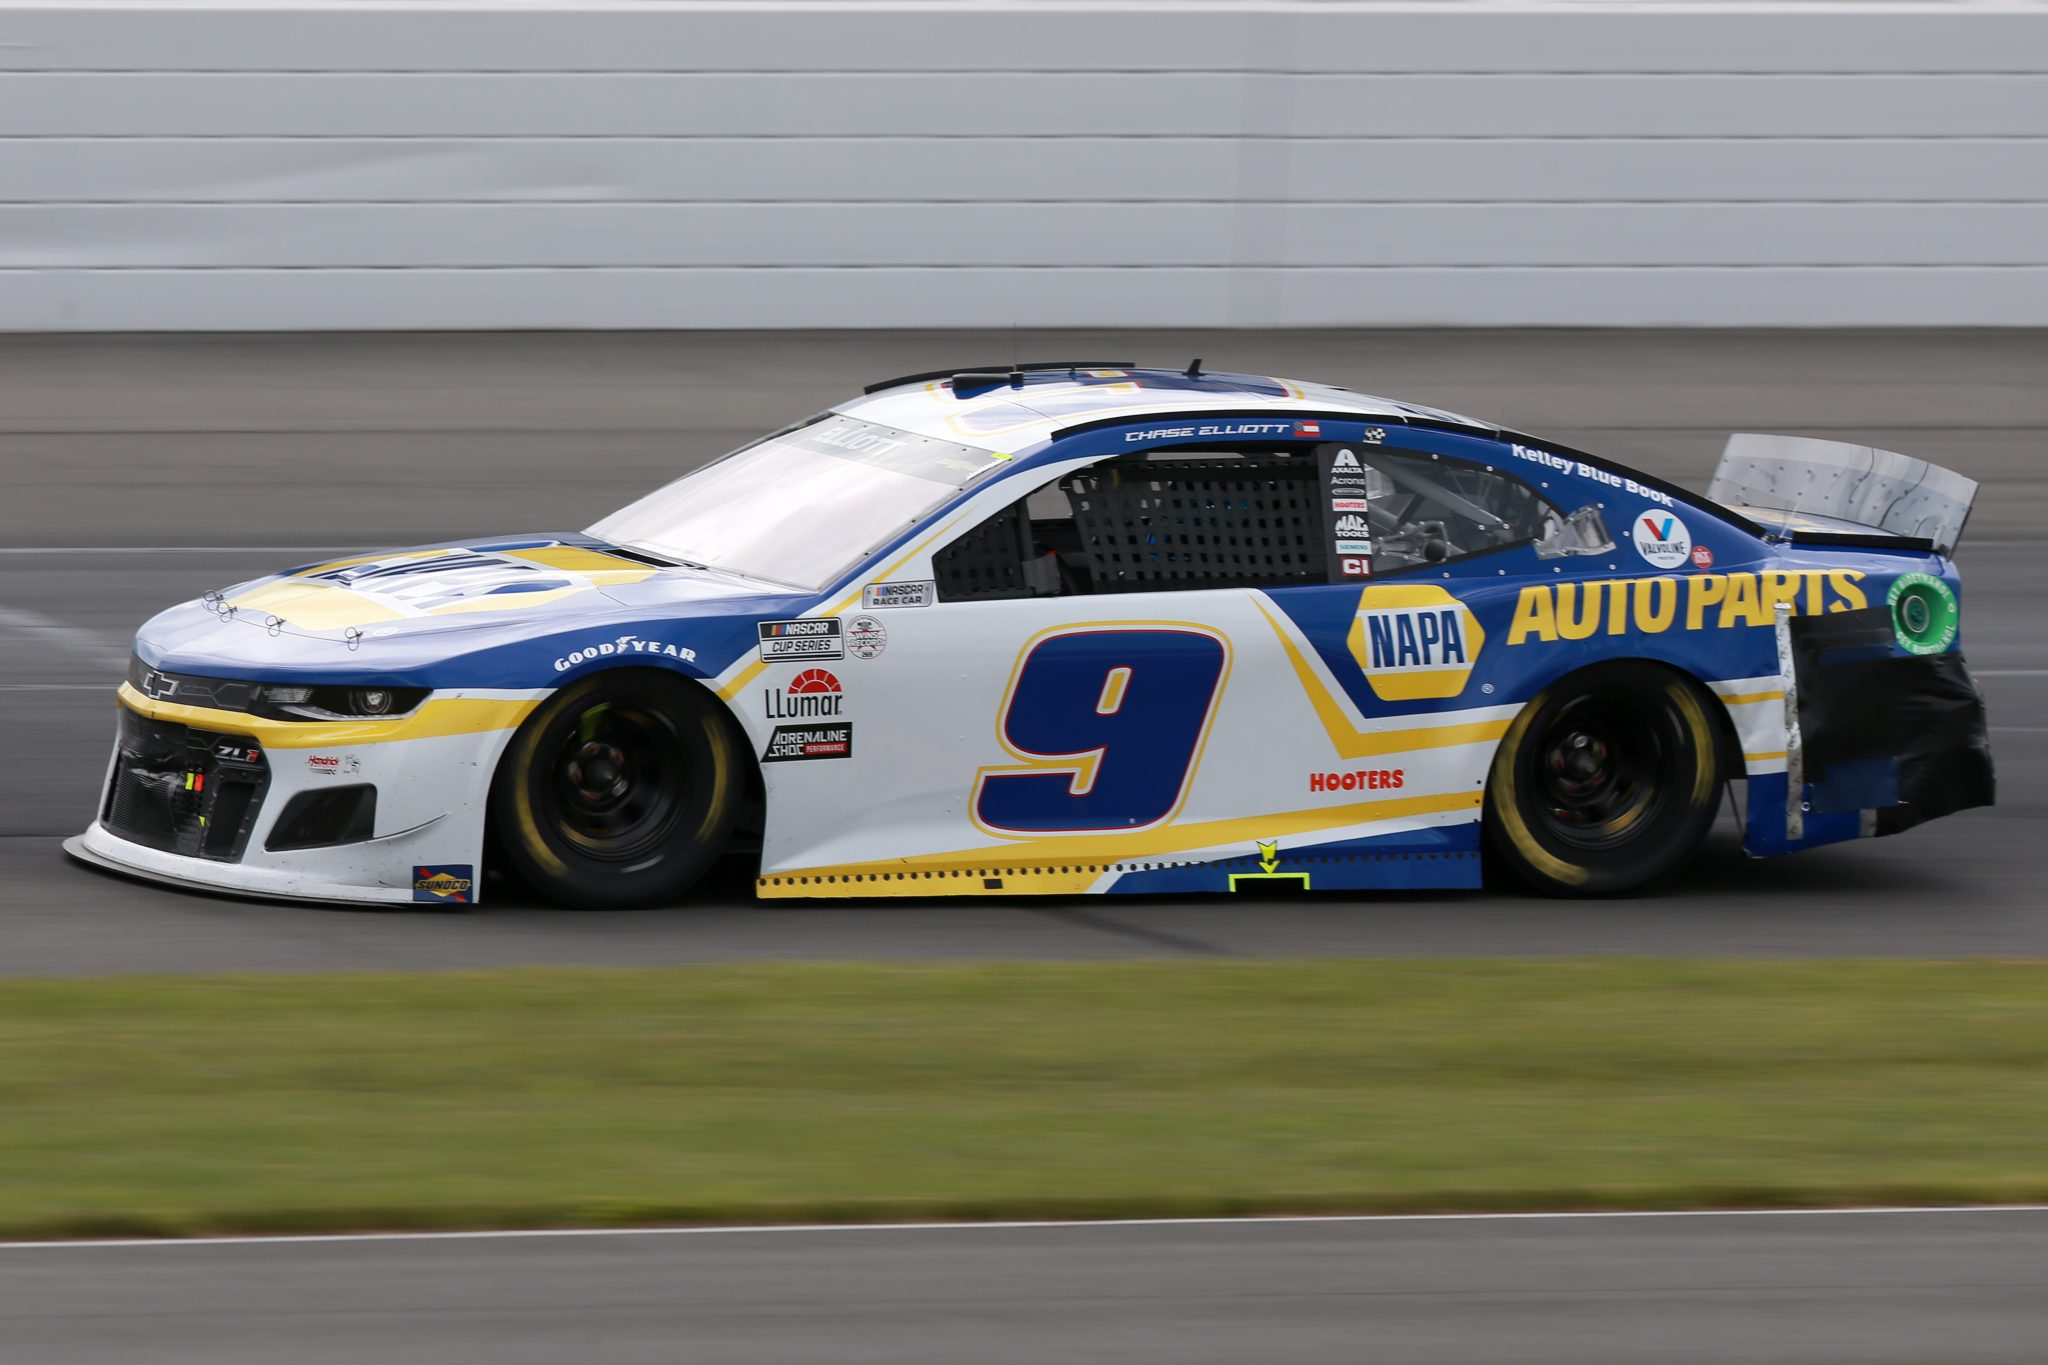 LONG POND, PENNSYLVANIA - JUNE 26: Chase Elliott, driver of the #9 NAPA Auto Parts Chevrolet, drives during the NASCAR Cup Series Pocono Organics CBD 325 at Pocono Raceway on June 26, 2021 in Long Pond, Pennsylvania. (Photo by Sean Gardner/Getty Images)   Getty Images